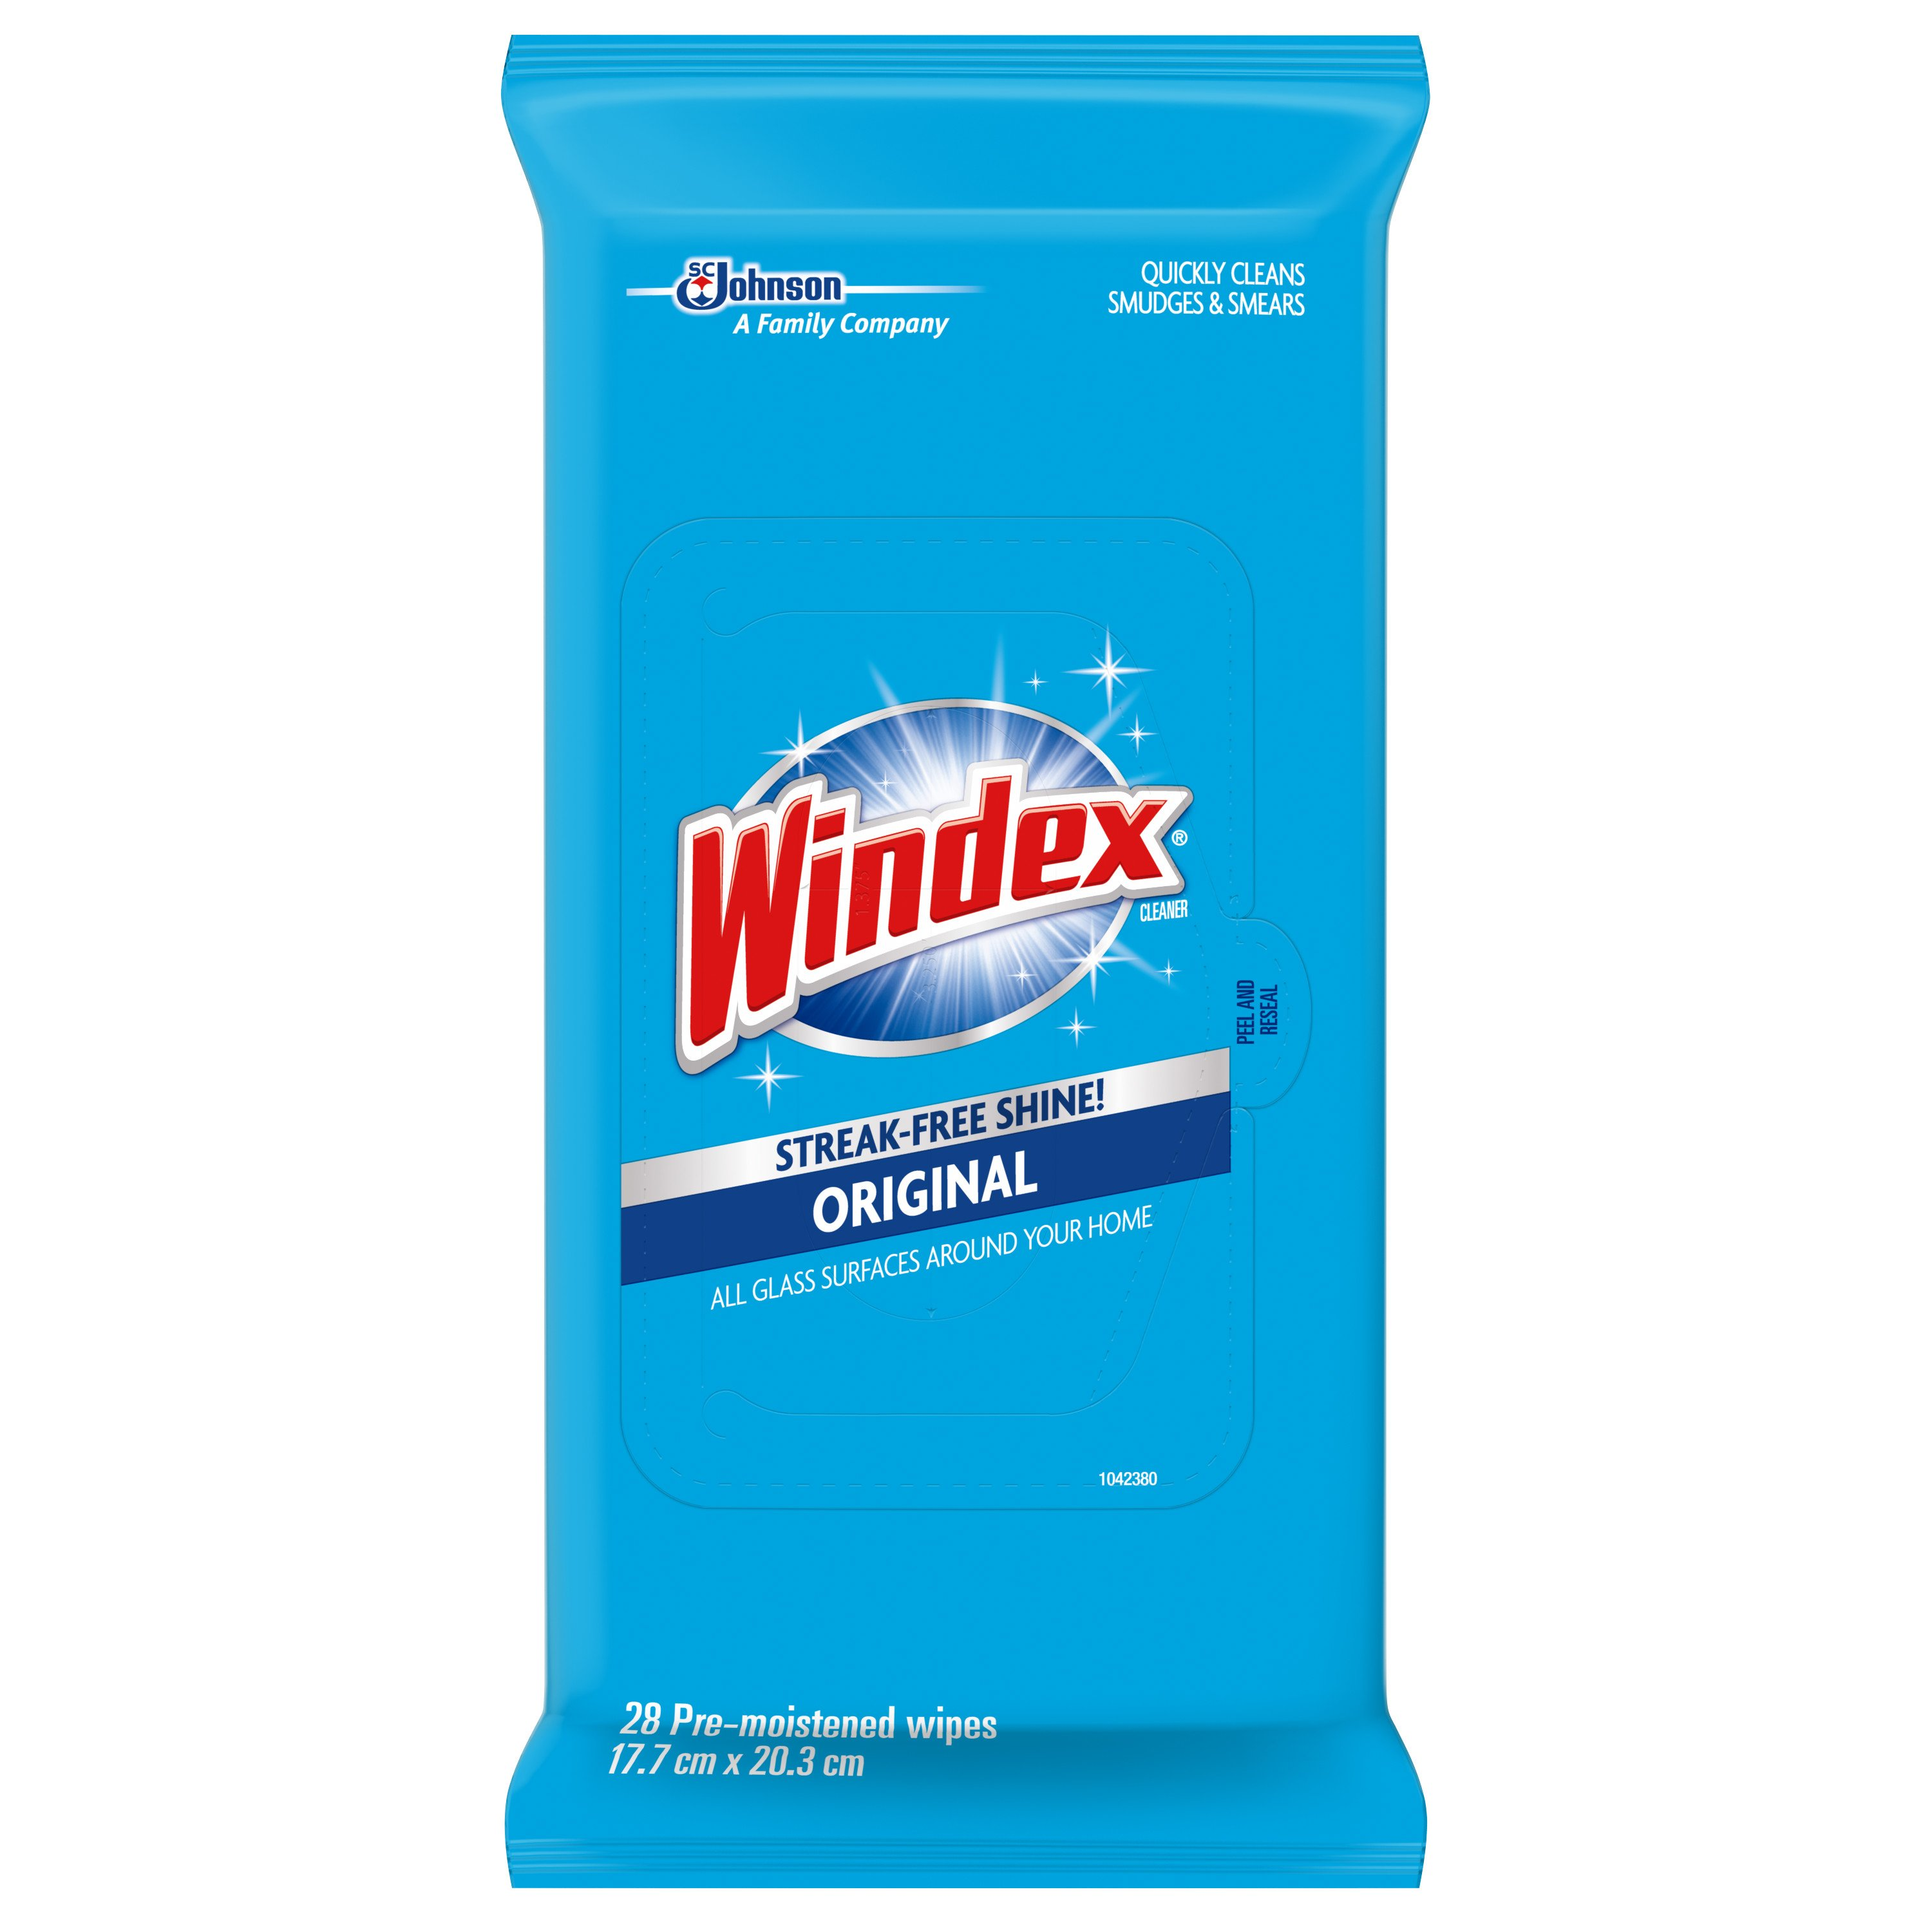 Windex Glass Cleaner Wipes